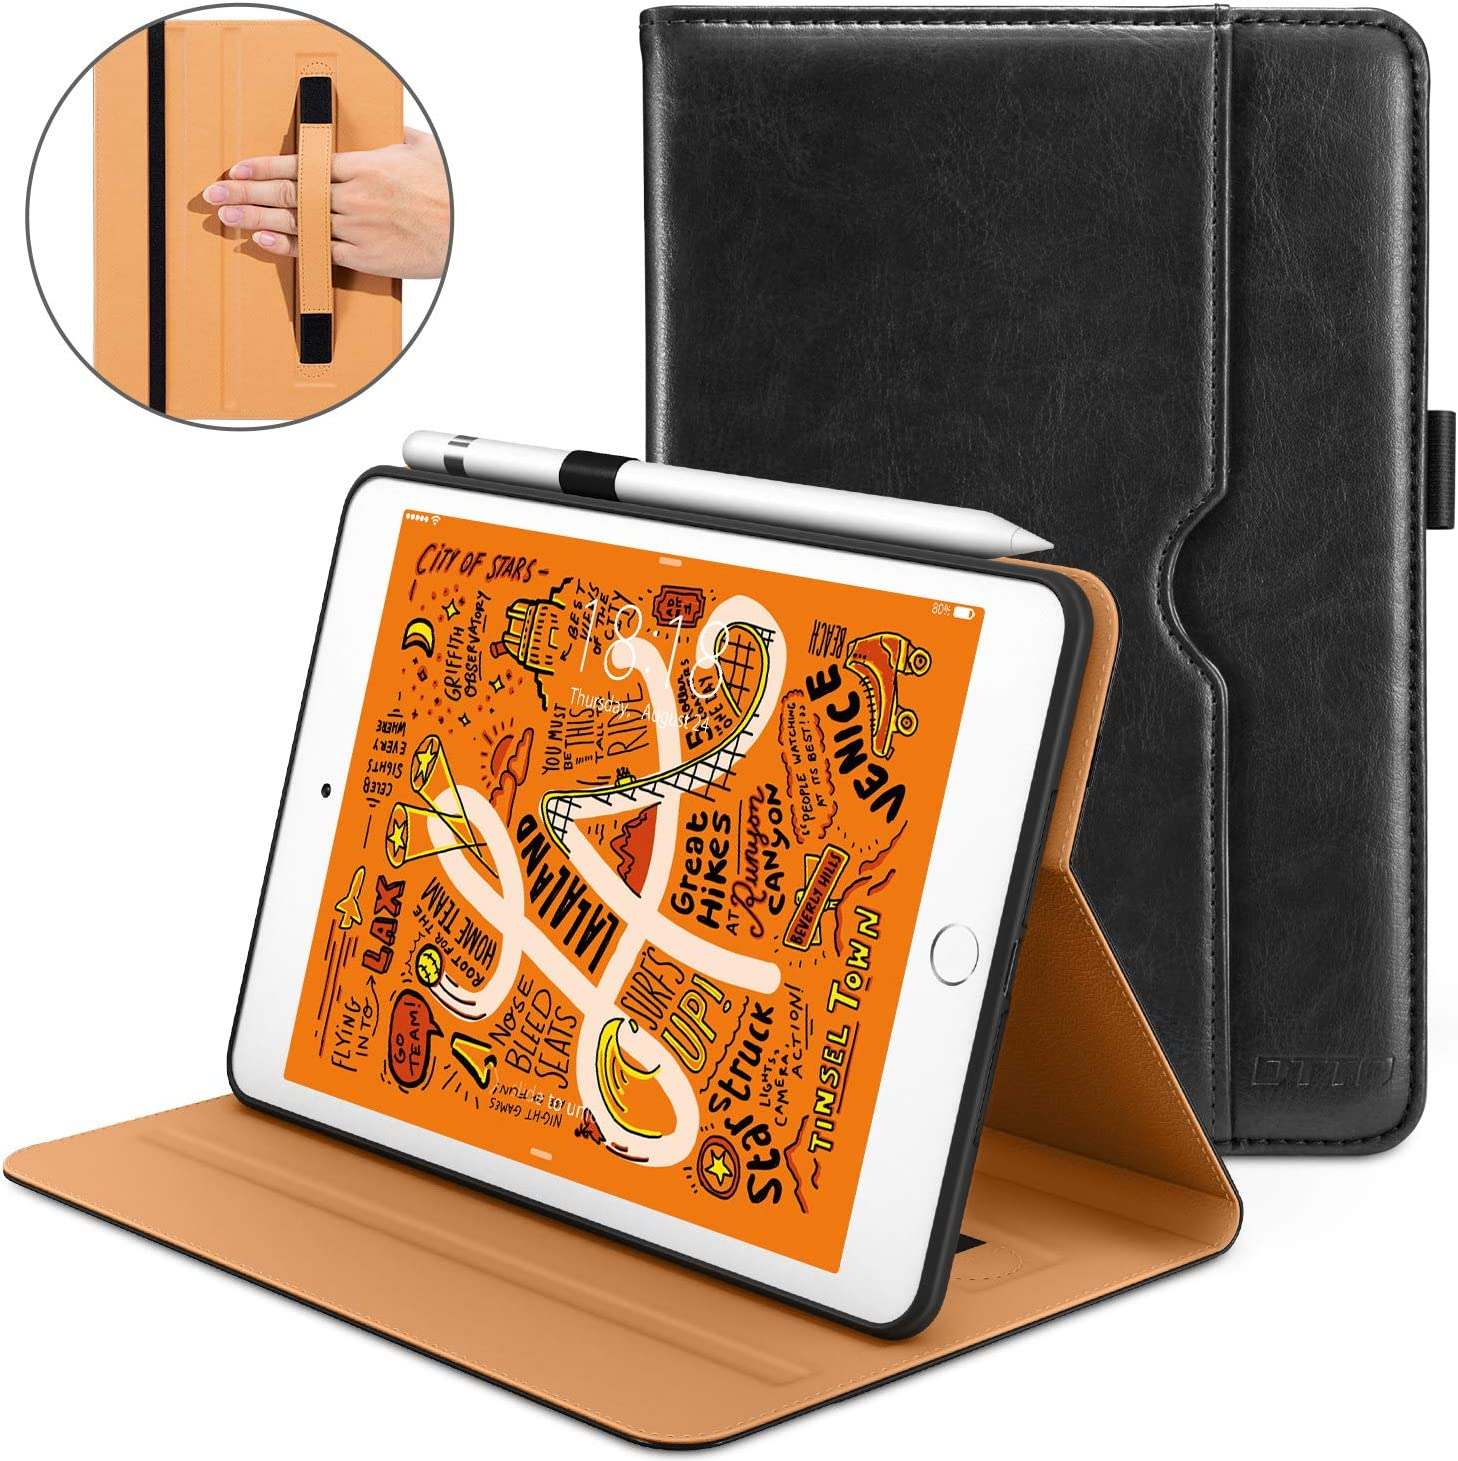 DTTO iPad Mini 5th Generation 2019 Case, [Noble Series] Leather Folio Cover Case with Apple Pencil Holder for iPad Mini 5 2019 [Auto Sleep/Wake], Black